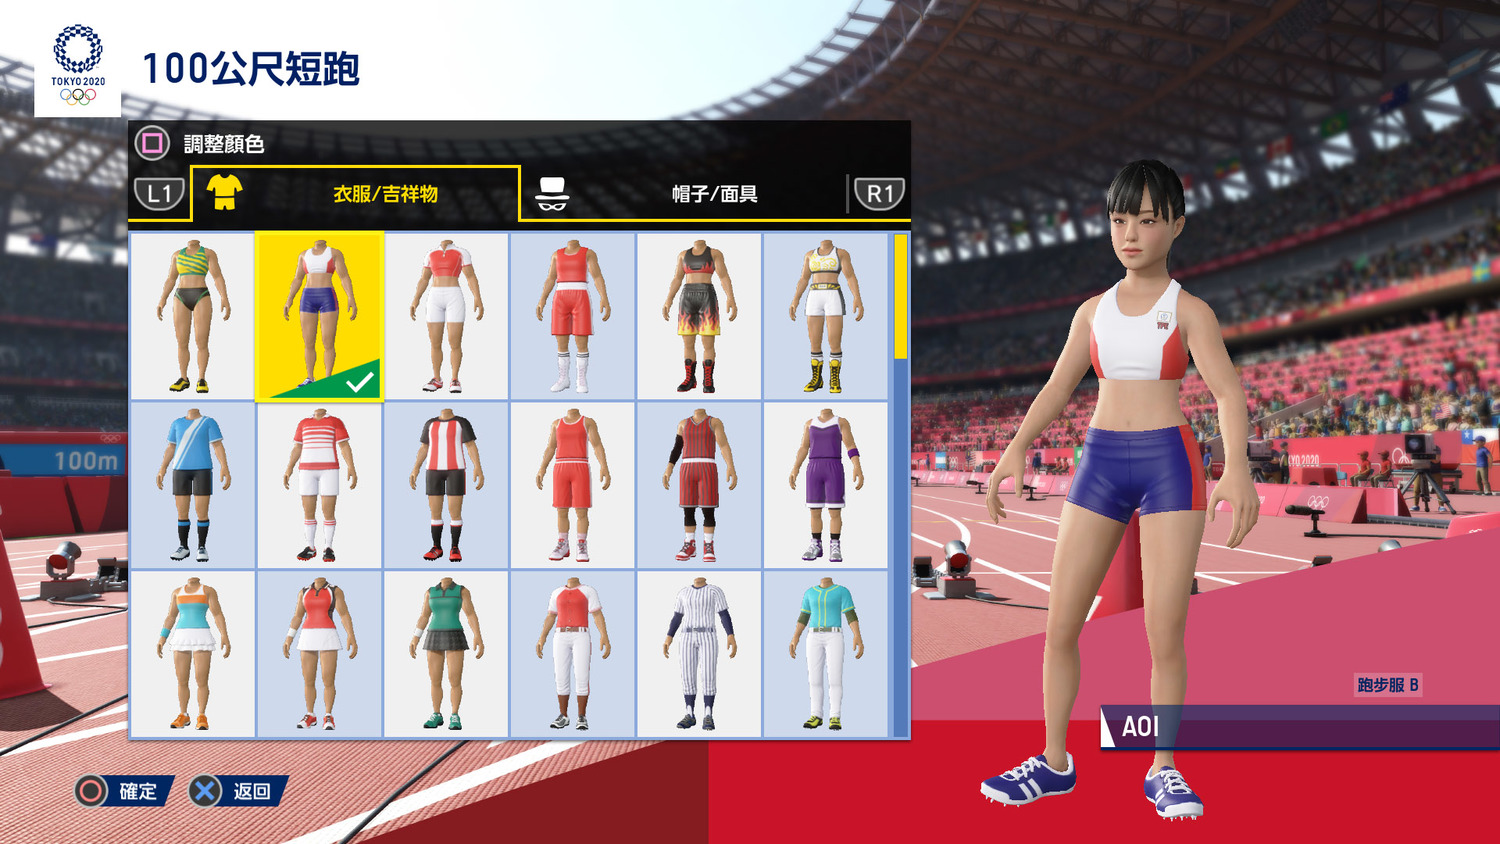 More than 100 kinds of rich costumes are also prepared in the game, which players can use to edit more diversified visual effects.Image: Provided by SOGA